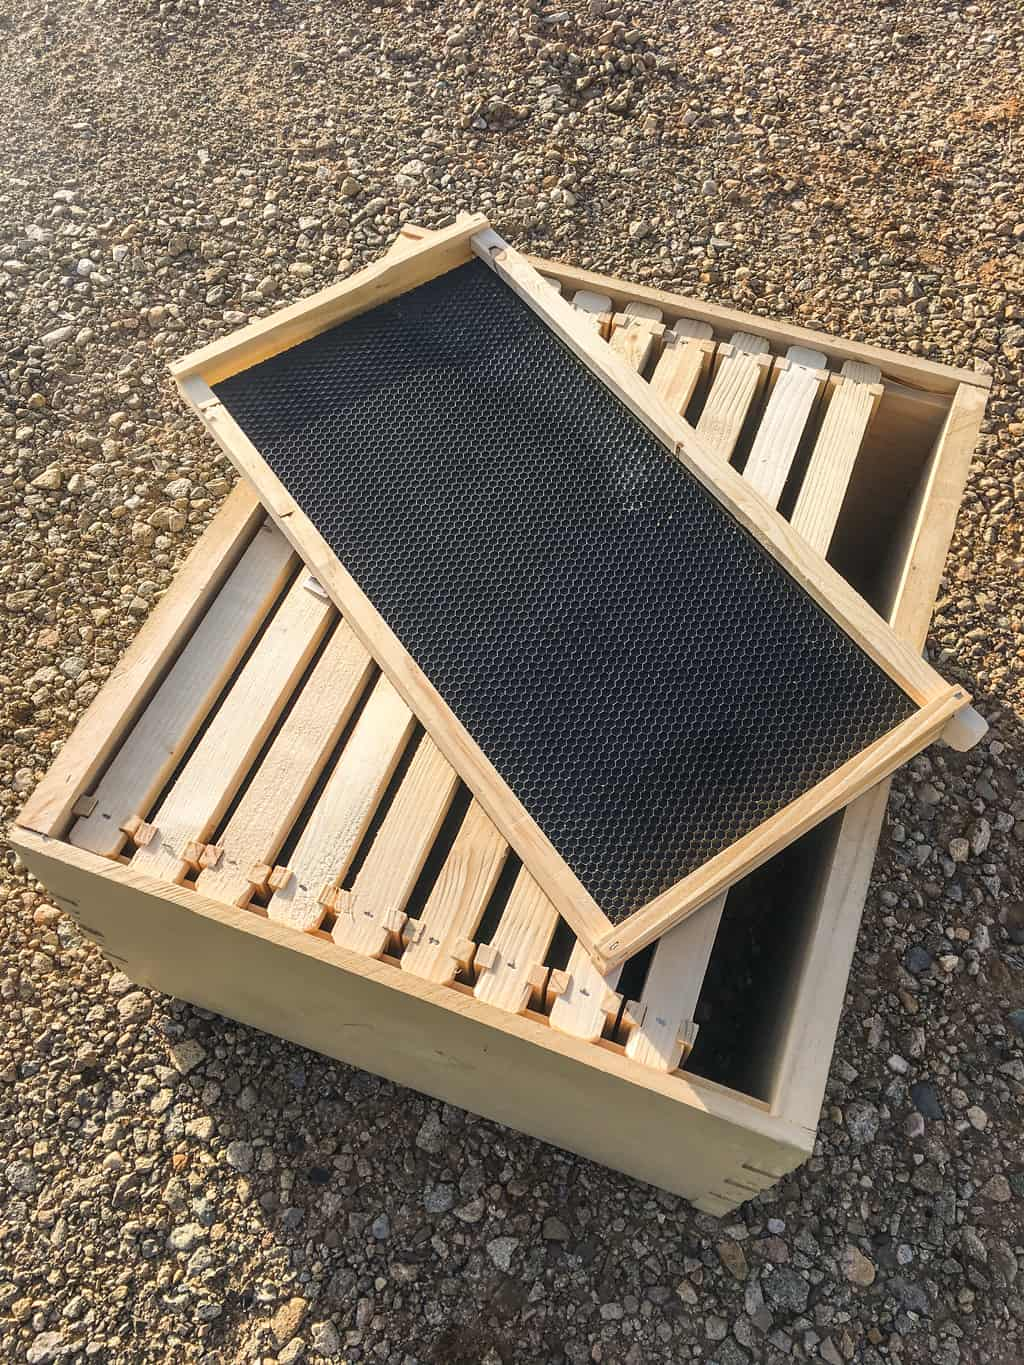 Are you interested in adding bees to your homestead? We are discussing beehives and what you need to get ready for bees on your property. Beginner Beekeeping   Building Beehives   New Beehive